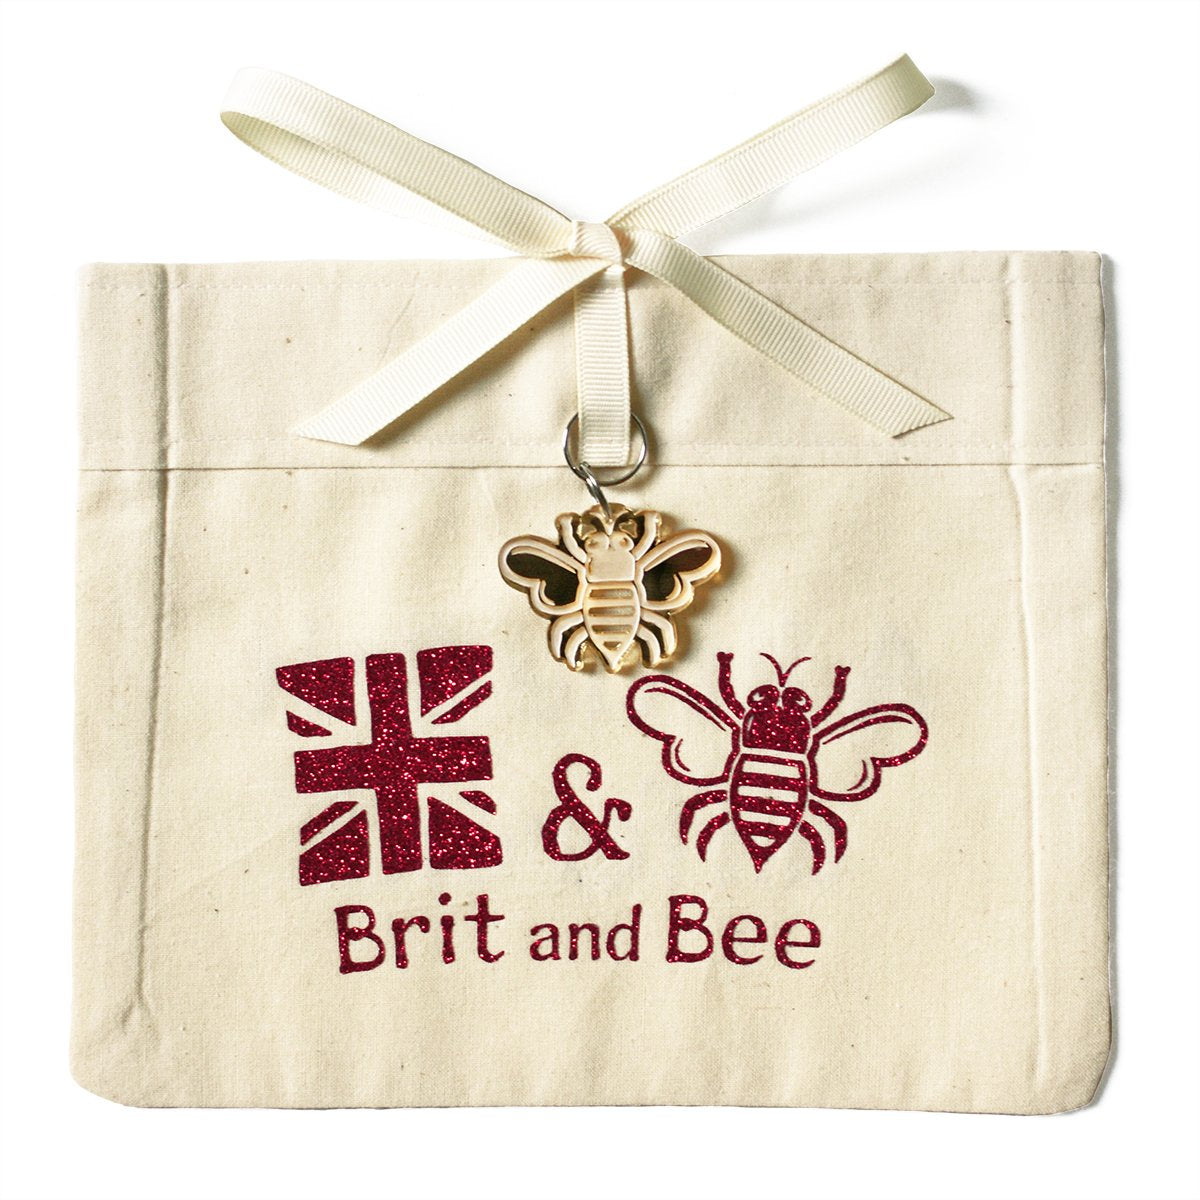 Alpha Omicron Pi Ornament | Brit and Bee